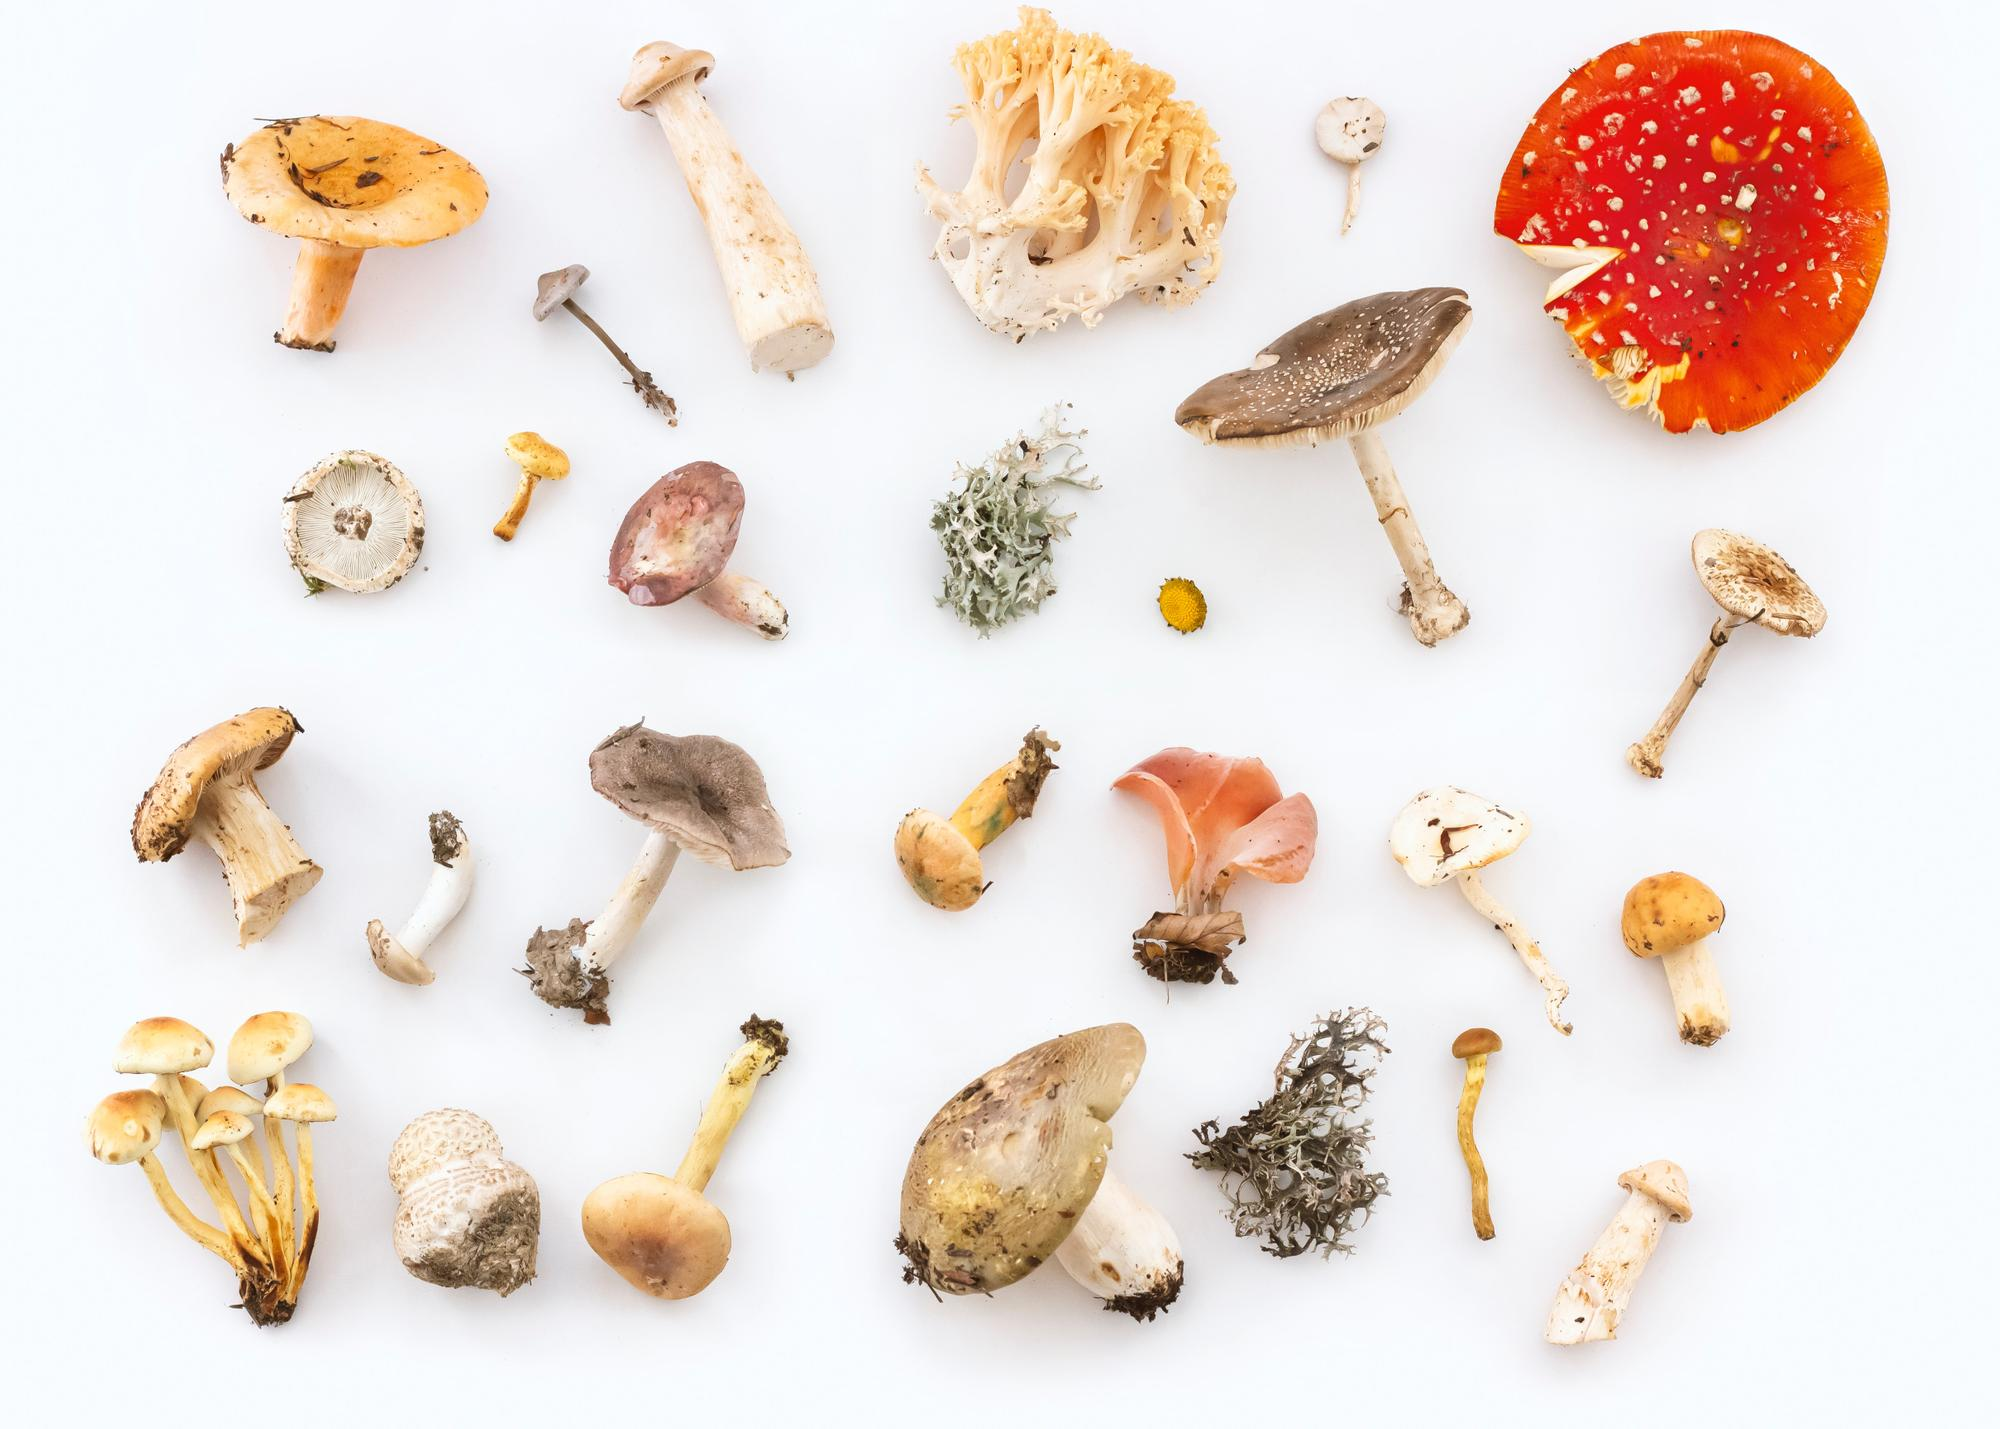 The mushroom queendom is full of variety and medicinal benefits.